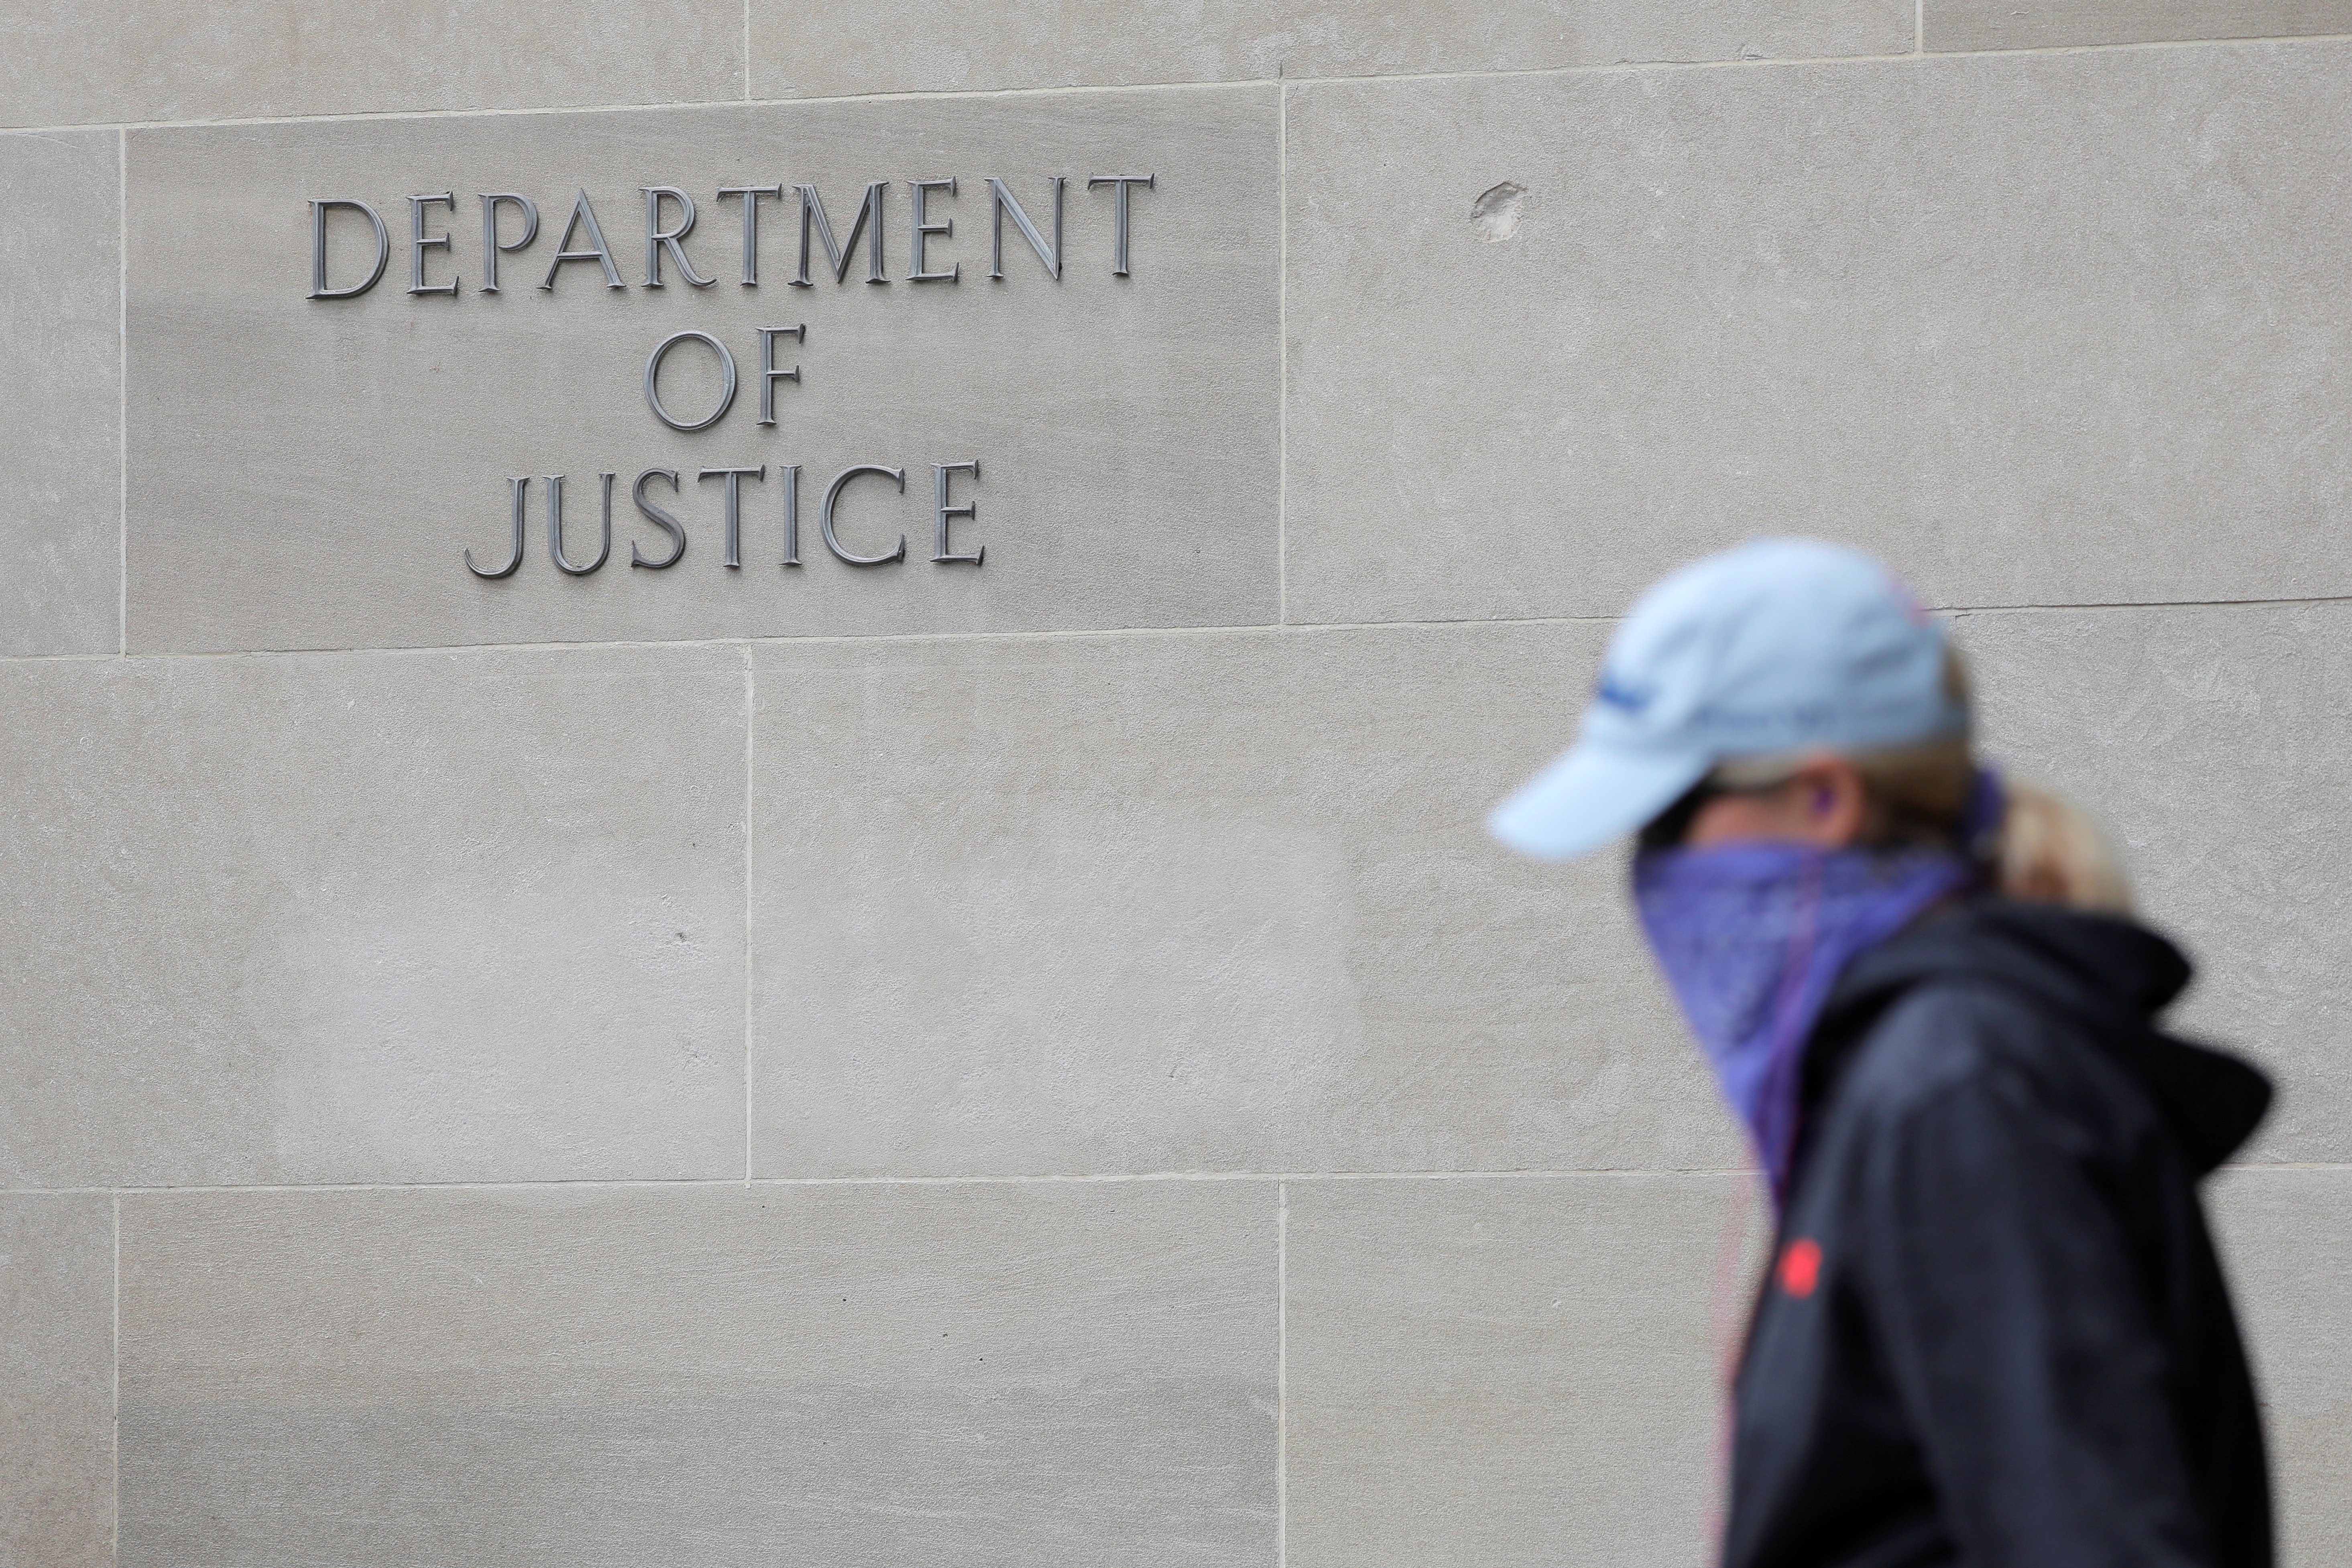 Signage is seen at the headquarters of the United States Department of Justice (DOJ) in Washington, D.C., U.S., May 10, 2021. REUTERS/Andrew Kelly